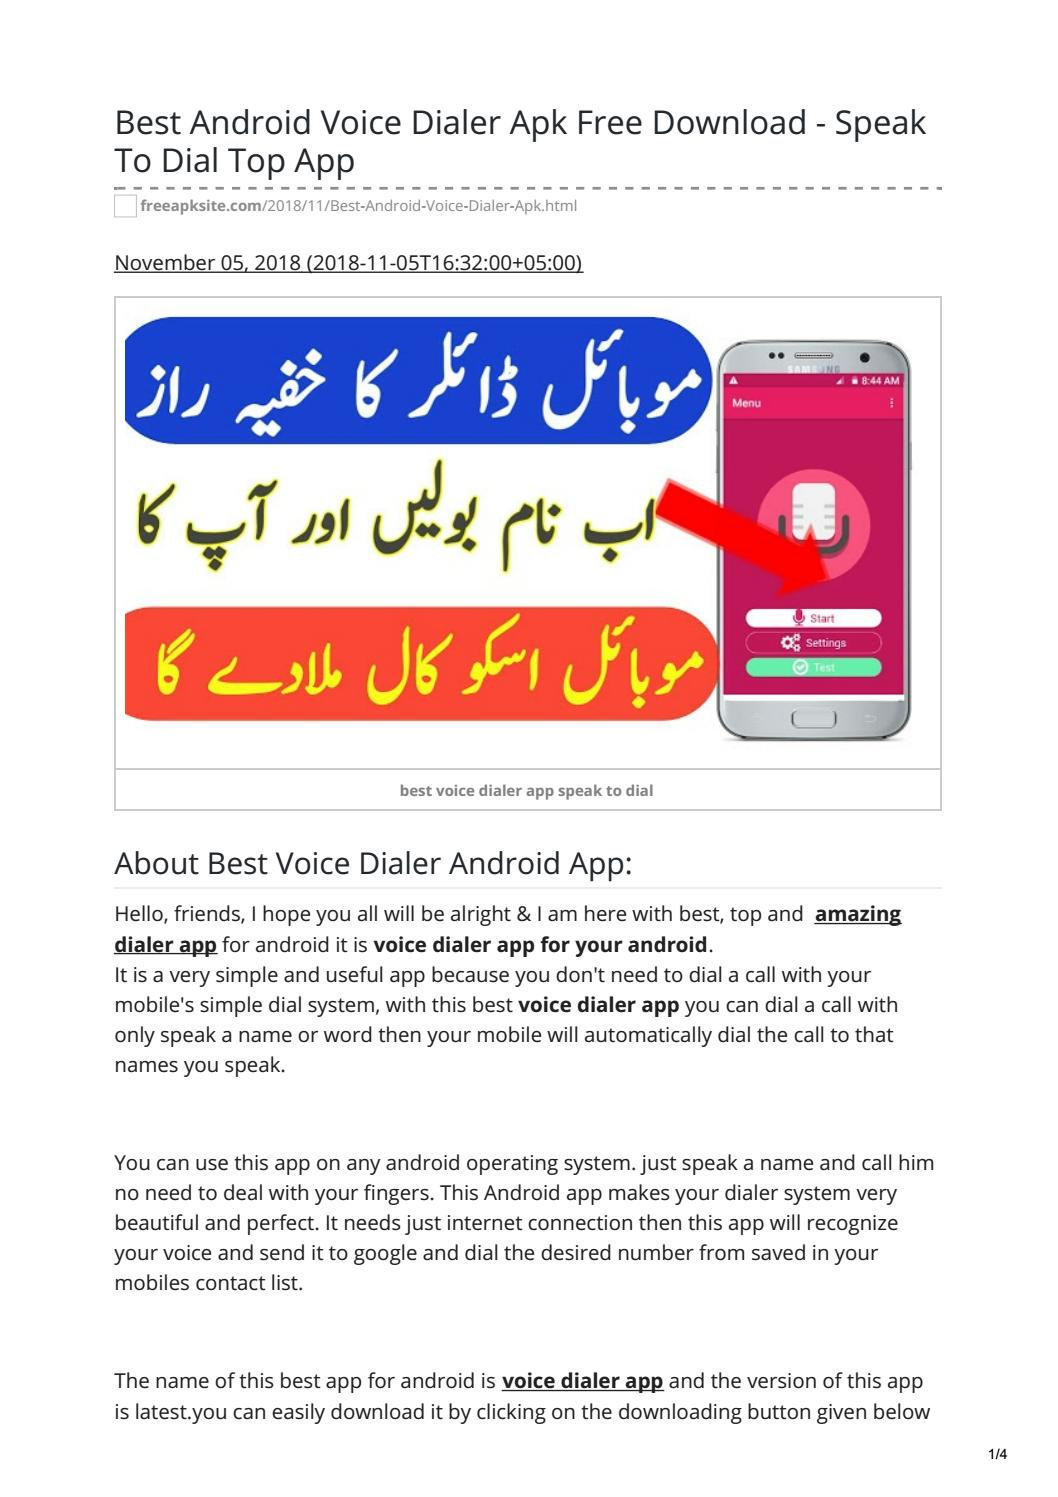 Best Android Voice Dialer Apk Free Download - Speak To Dial